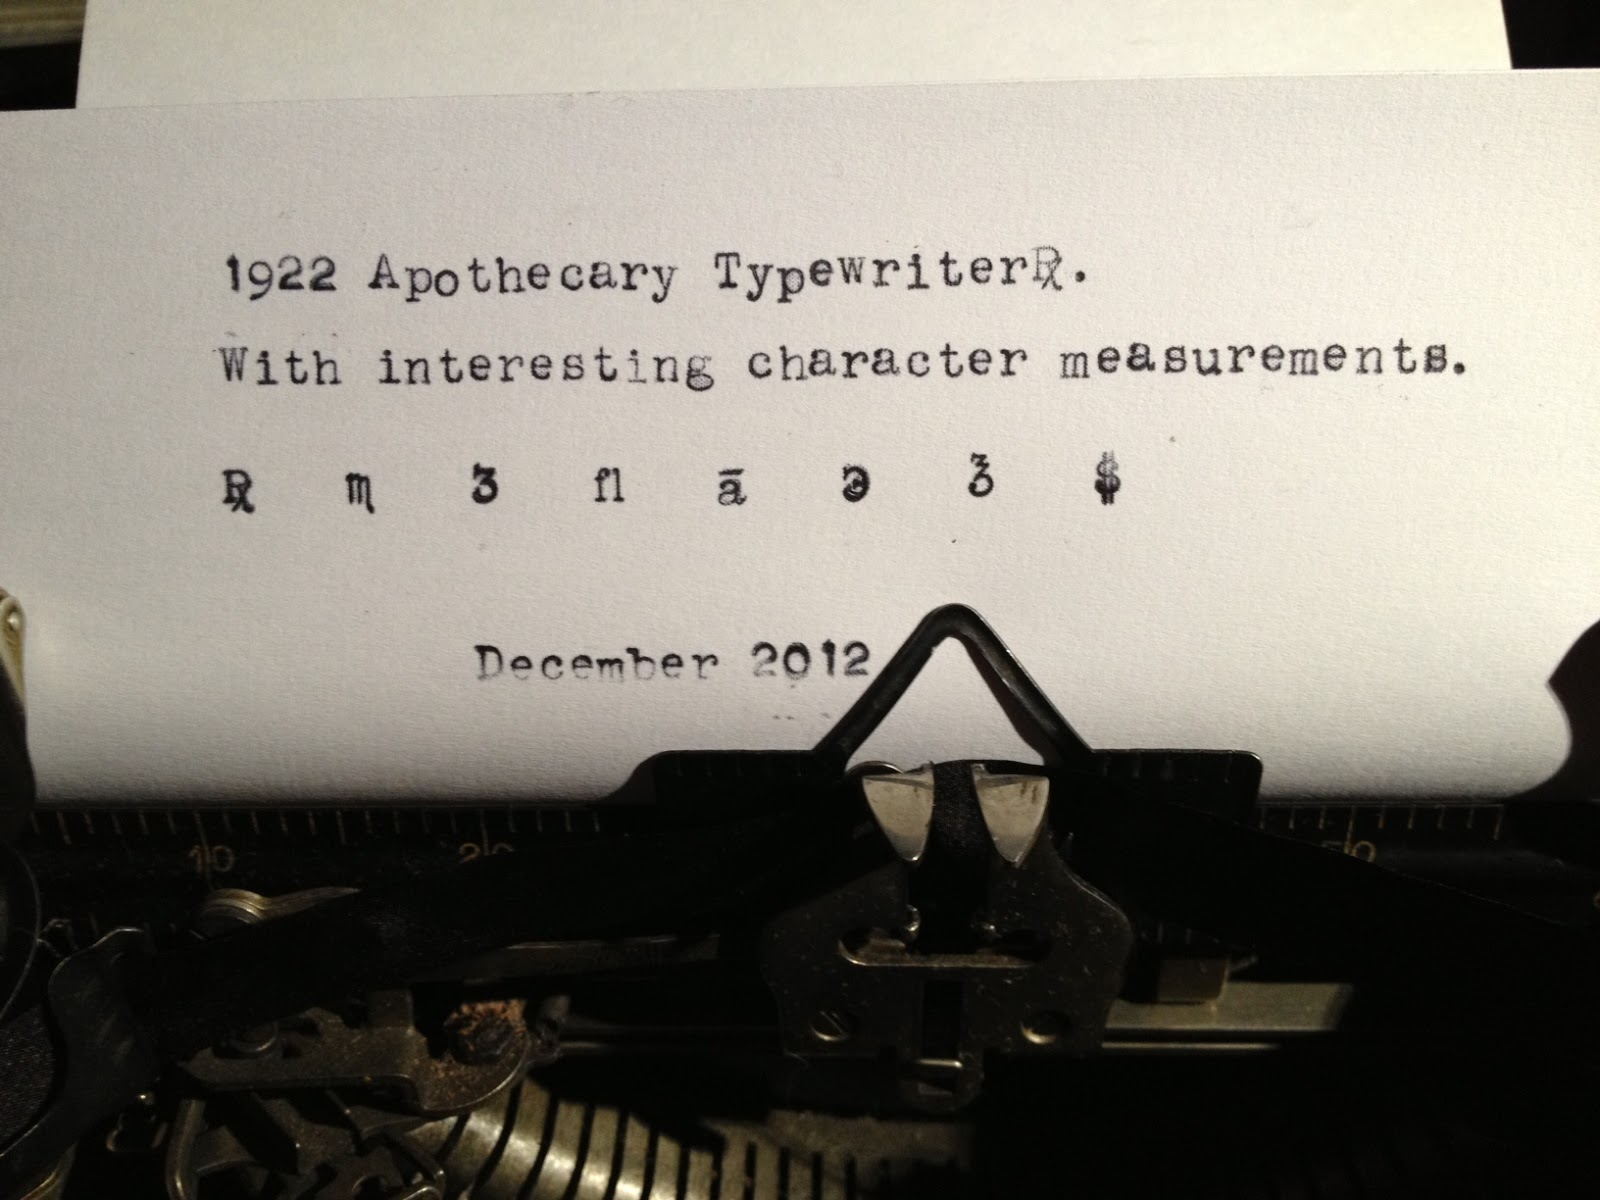 Typewriter With Paper Had typewriters produced